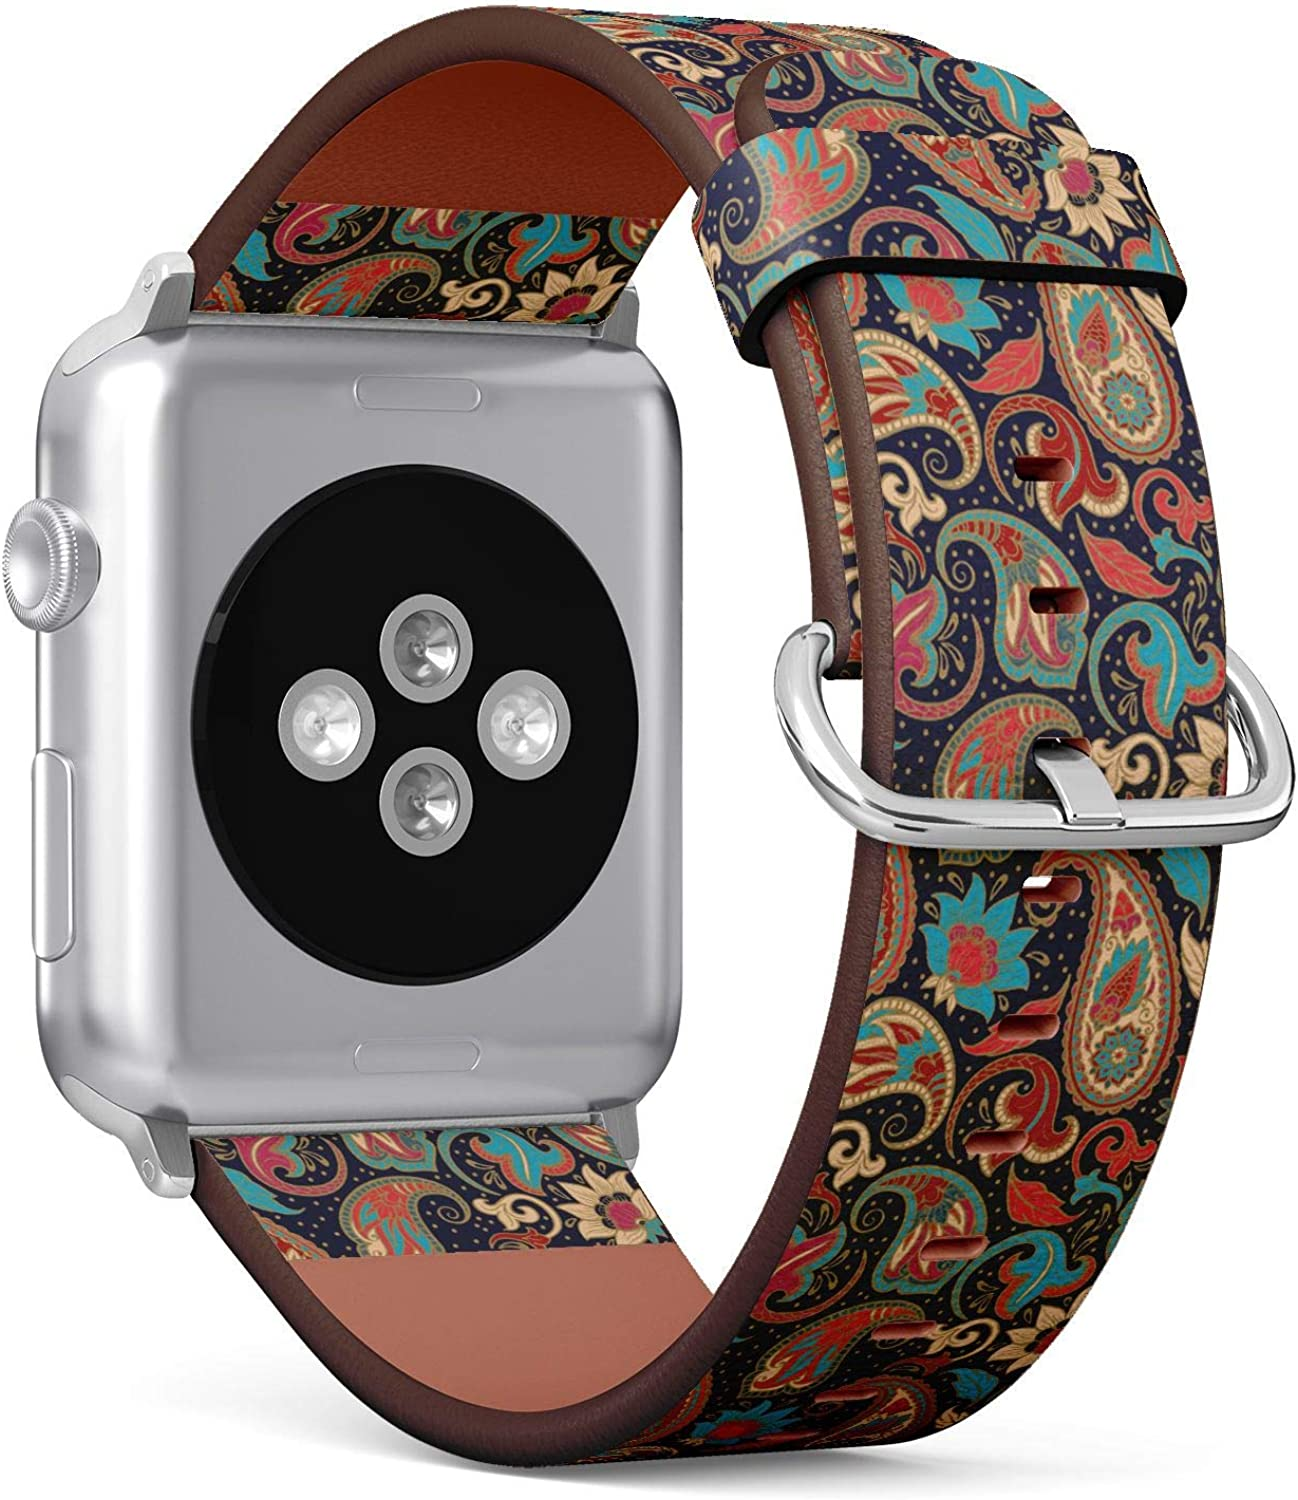 (Decorative Pattern of Ethnic Paisley) Patterned Leather Wristband Strap for Apple Watch Series 4/3/2/1 gen,Replacement for iWatch 38mm / 40mm Bands